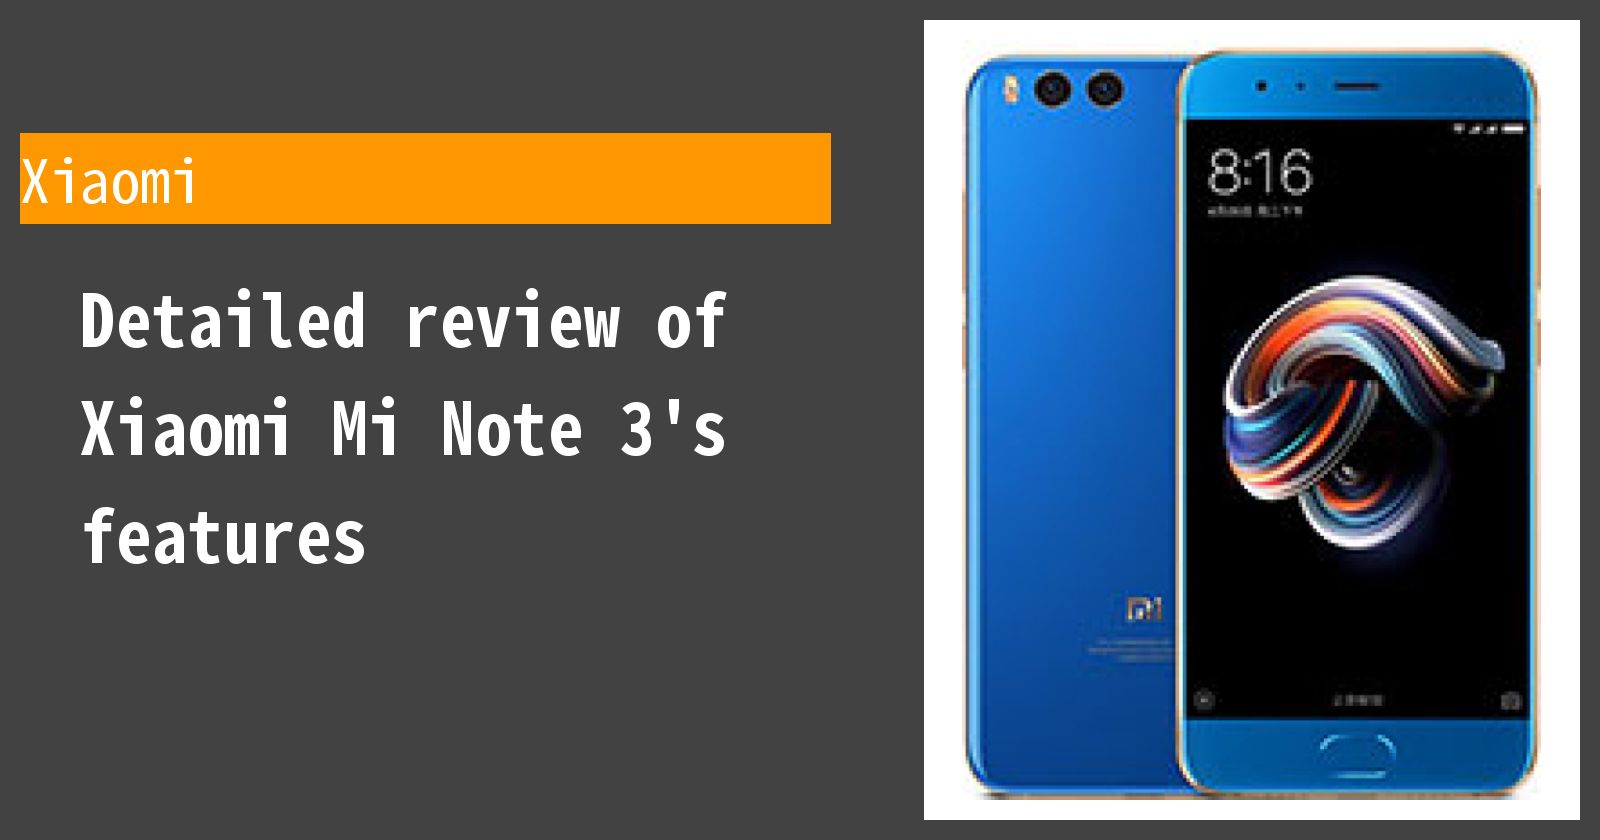 Detailed review of Xiaomi Mi Note 3's features